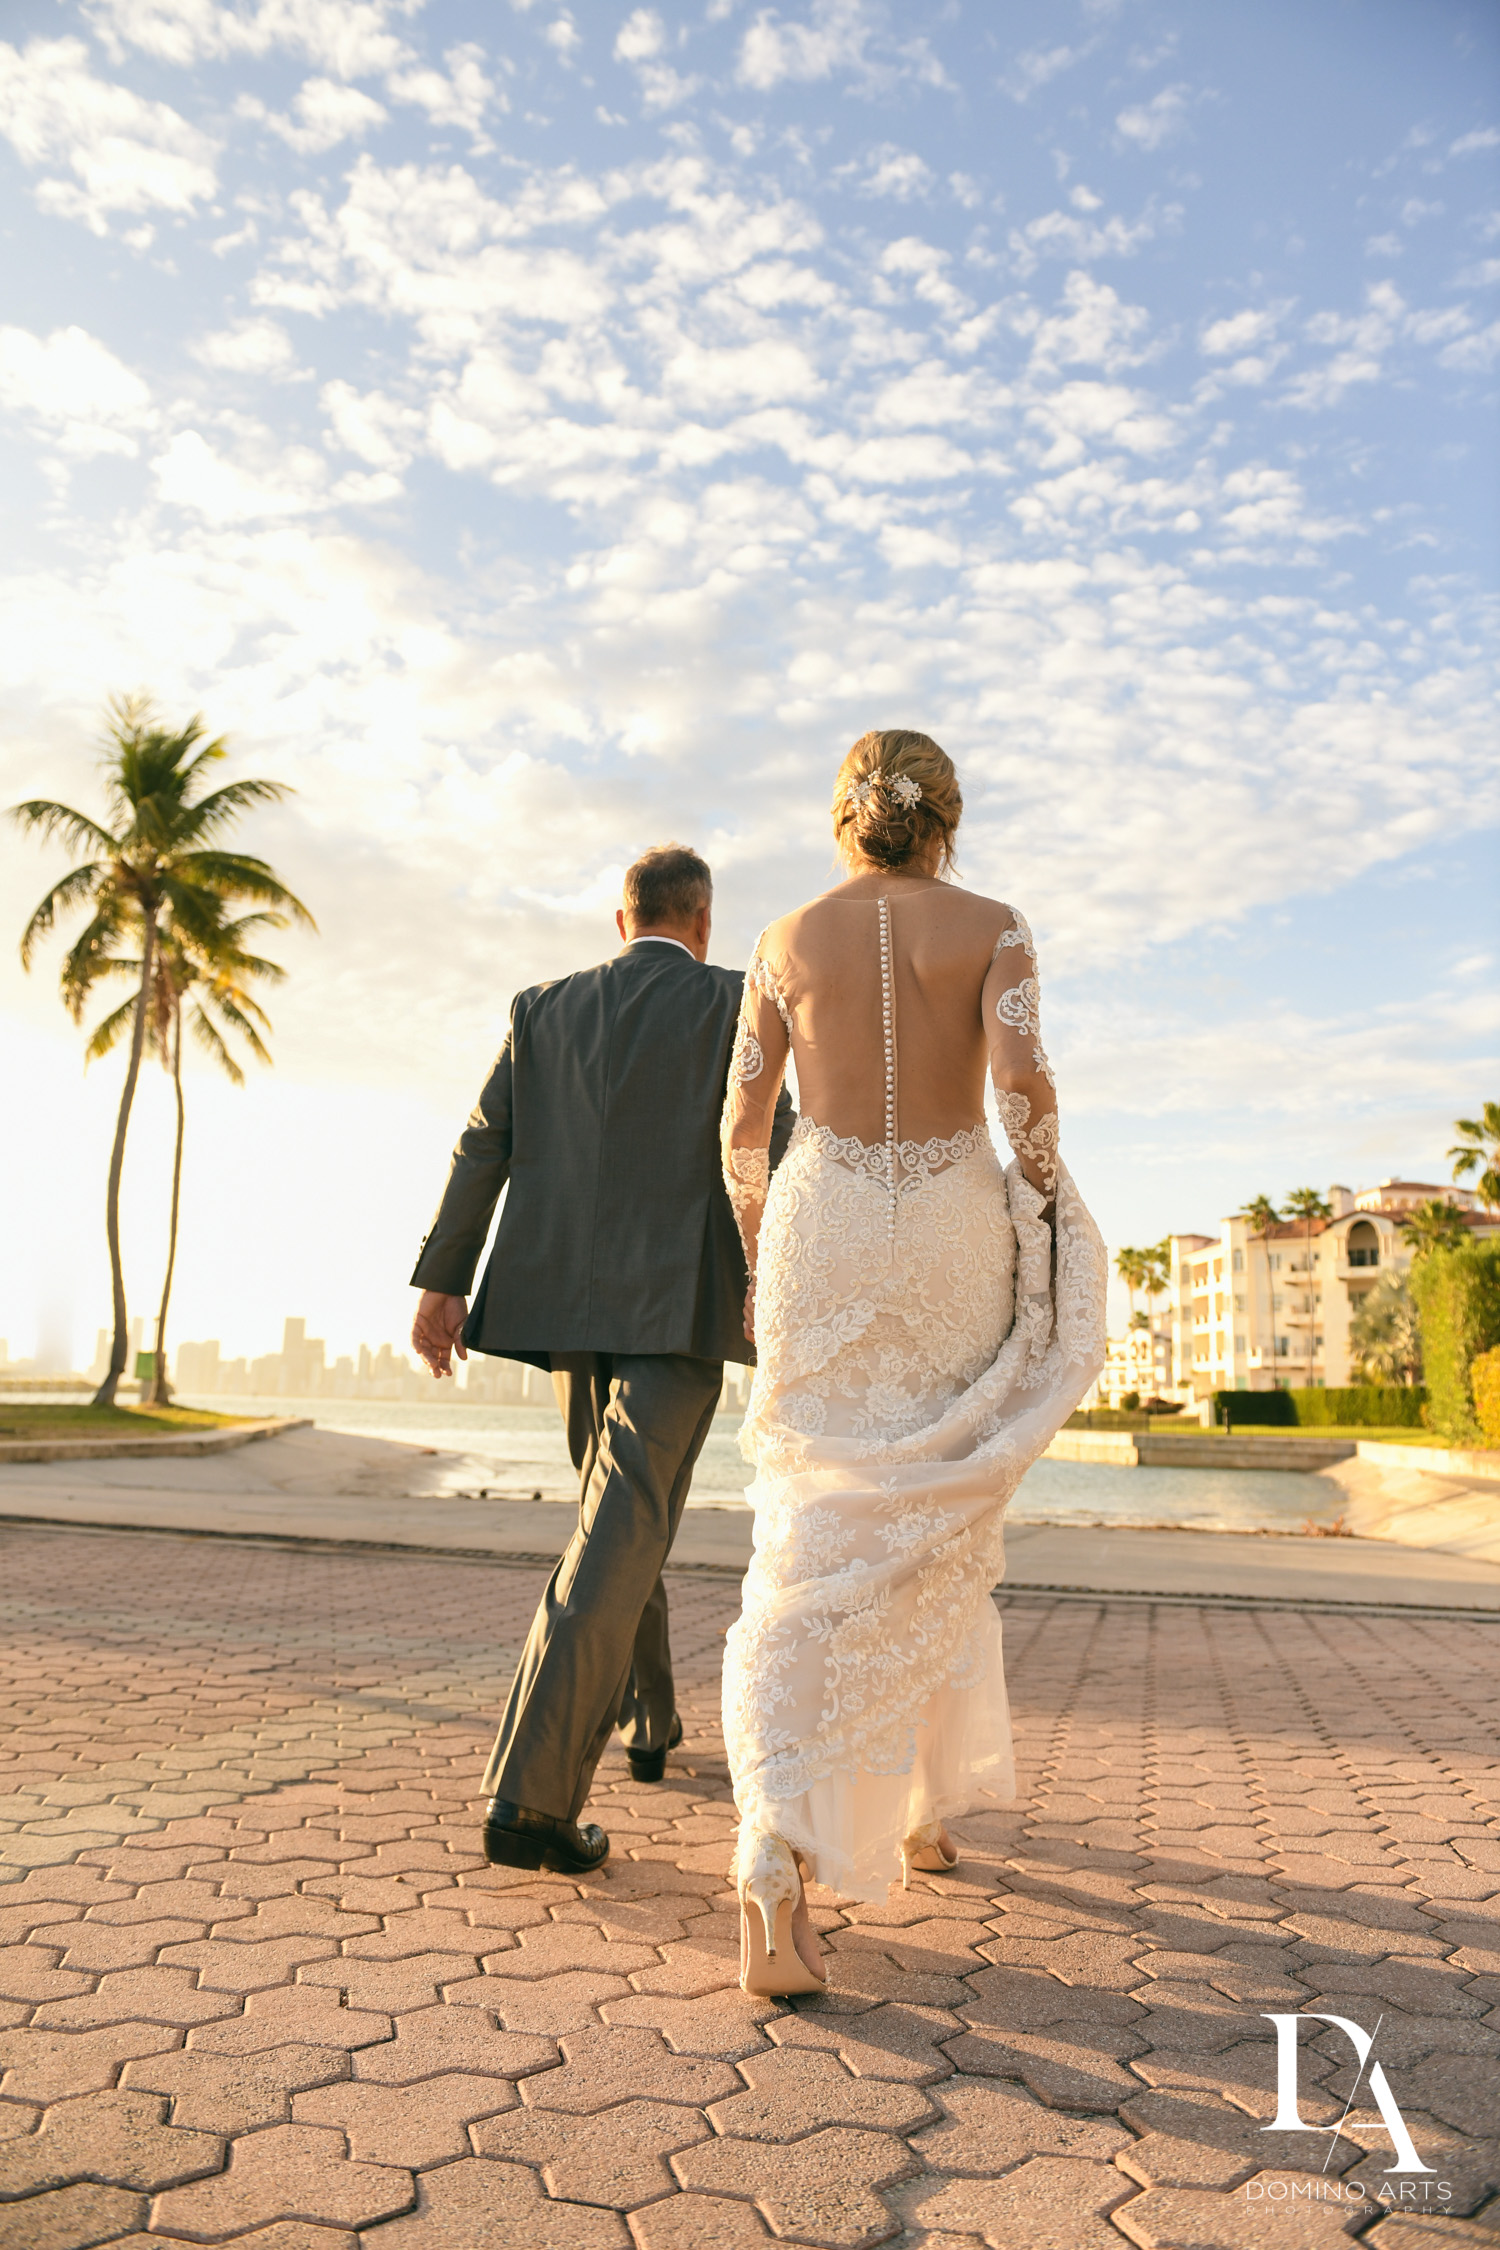 Classic & Elegant Wedding Photography at Fisher Island Miami by Domino Arts Photography